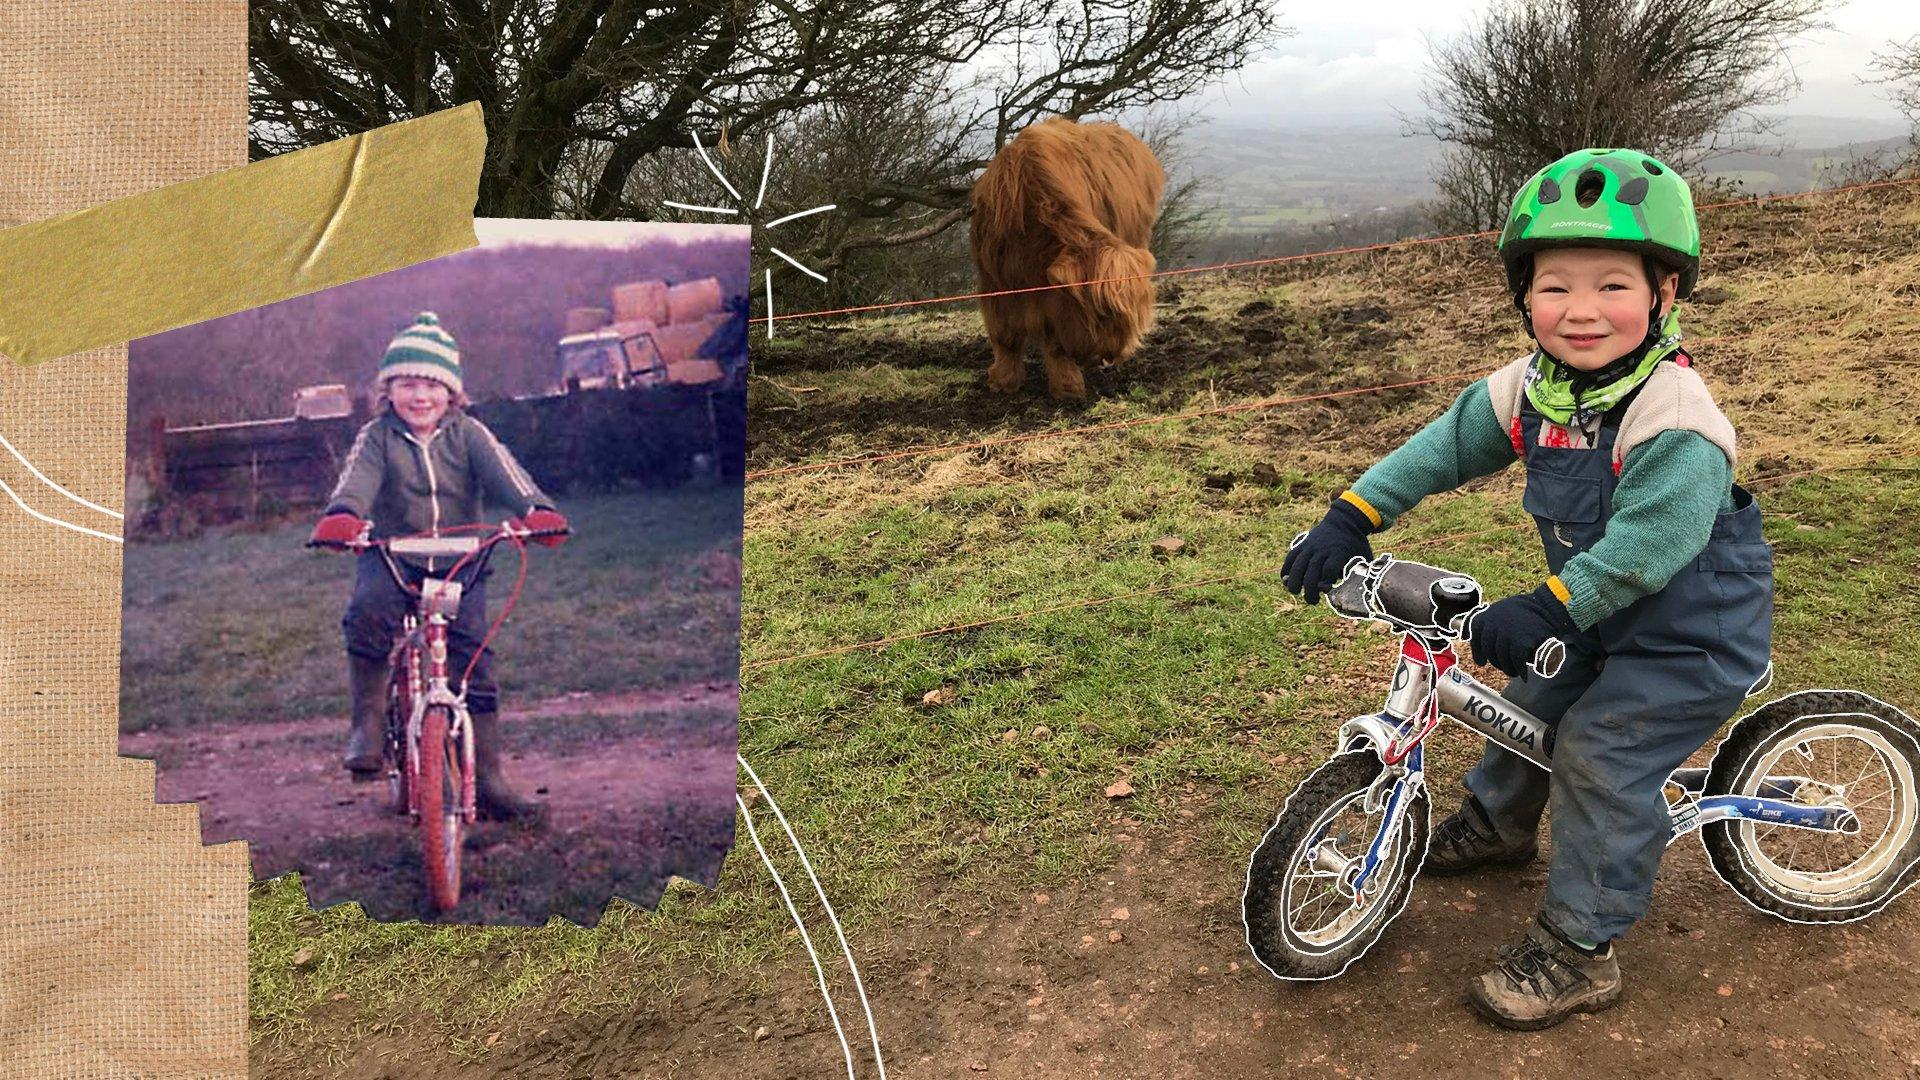 An older photo of Tracy cycling next to an image of her son, Toby on his balance bike